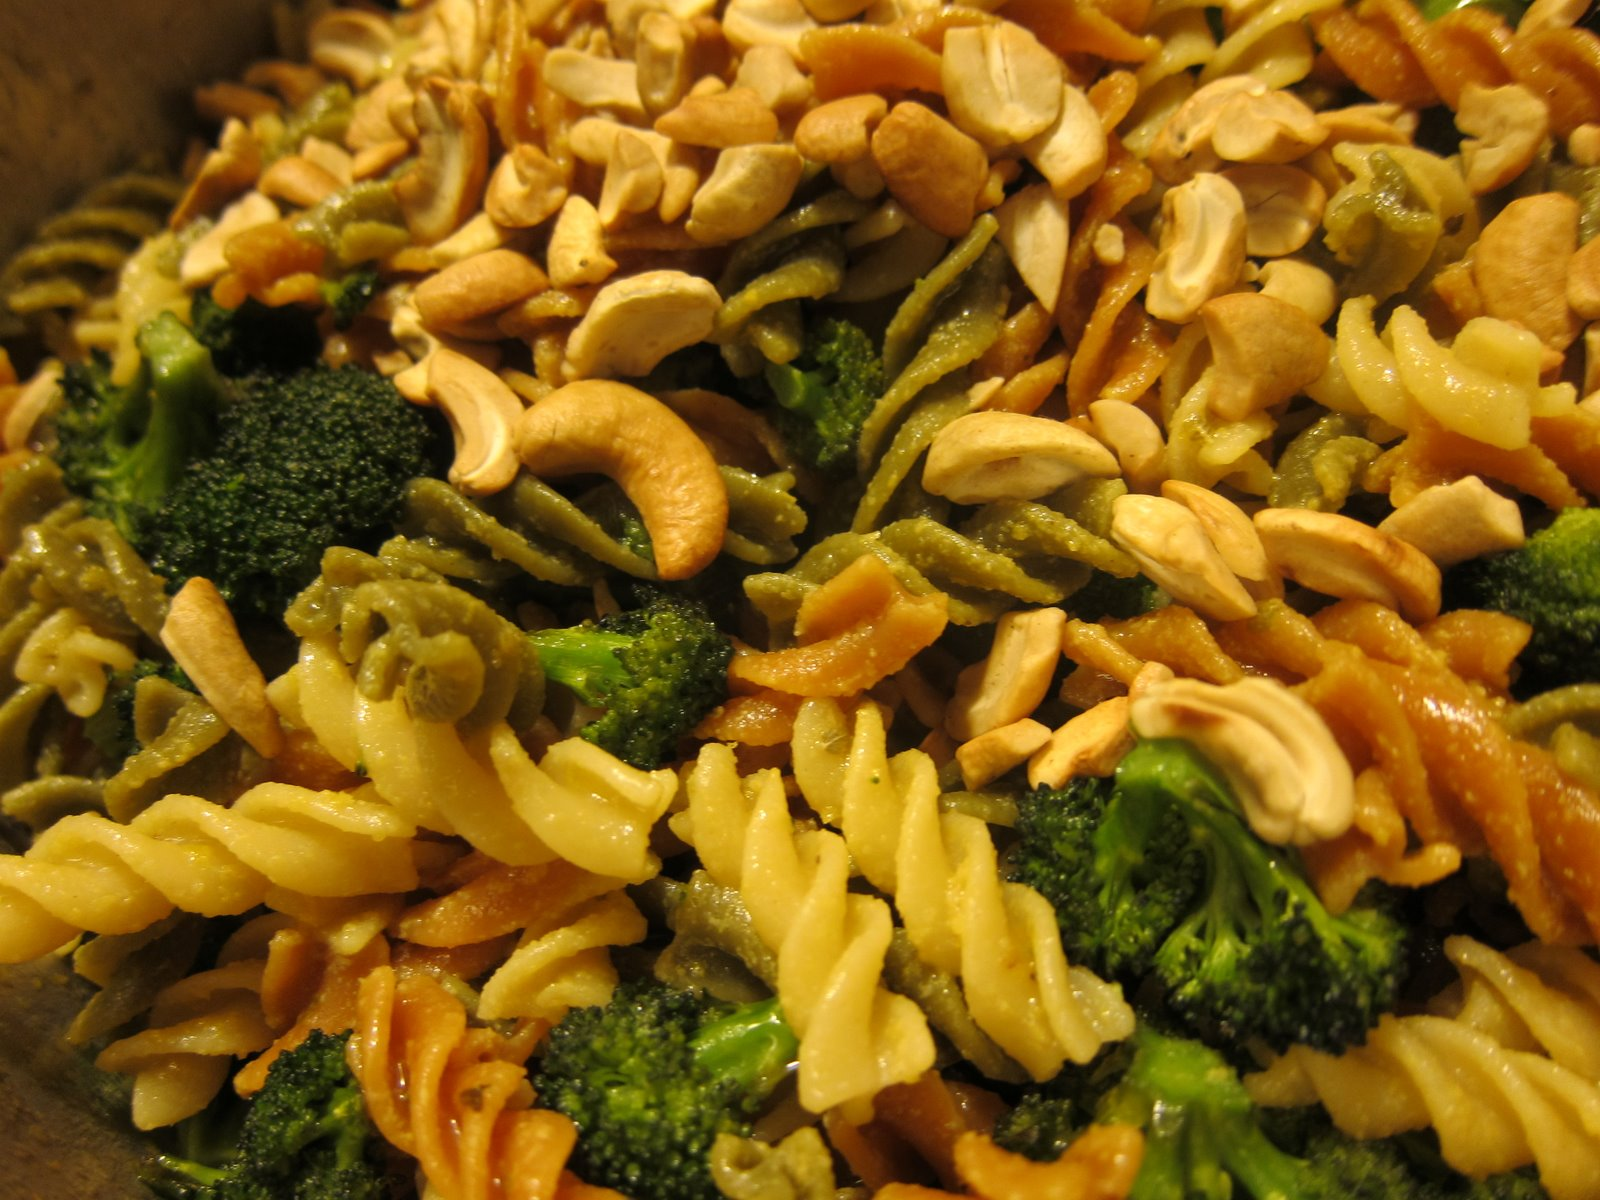 with Spinach and Tomato, Roasted Broccoli and Cashews, Fresh Garlic ...